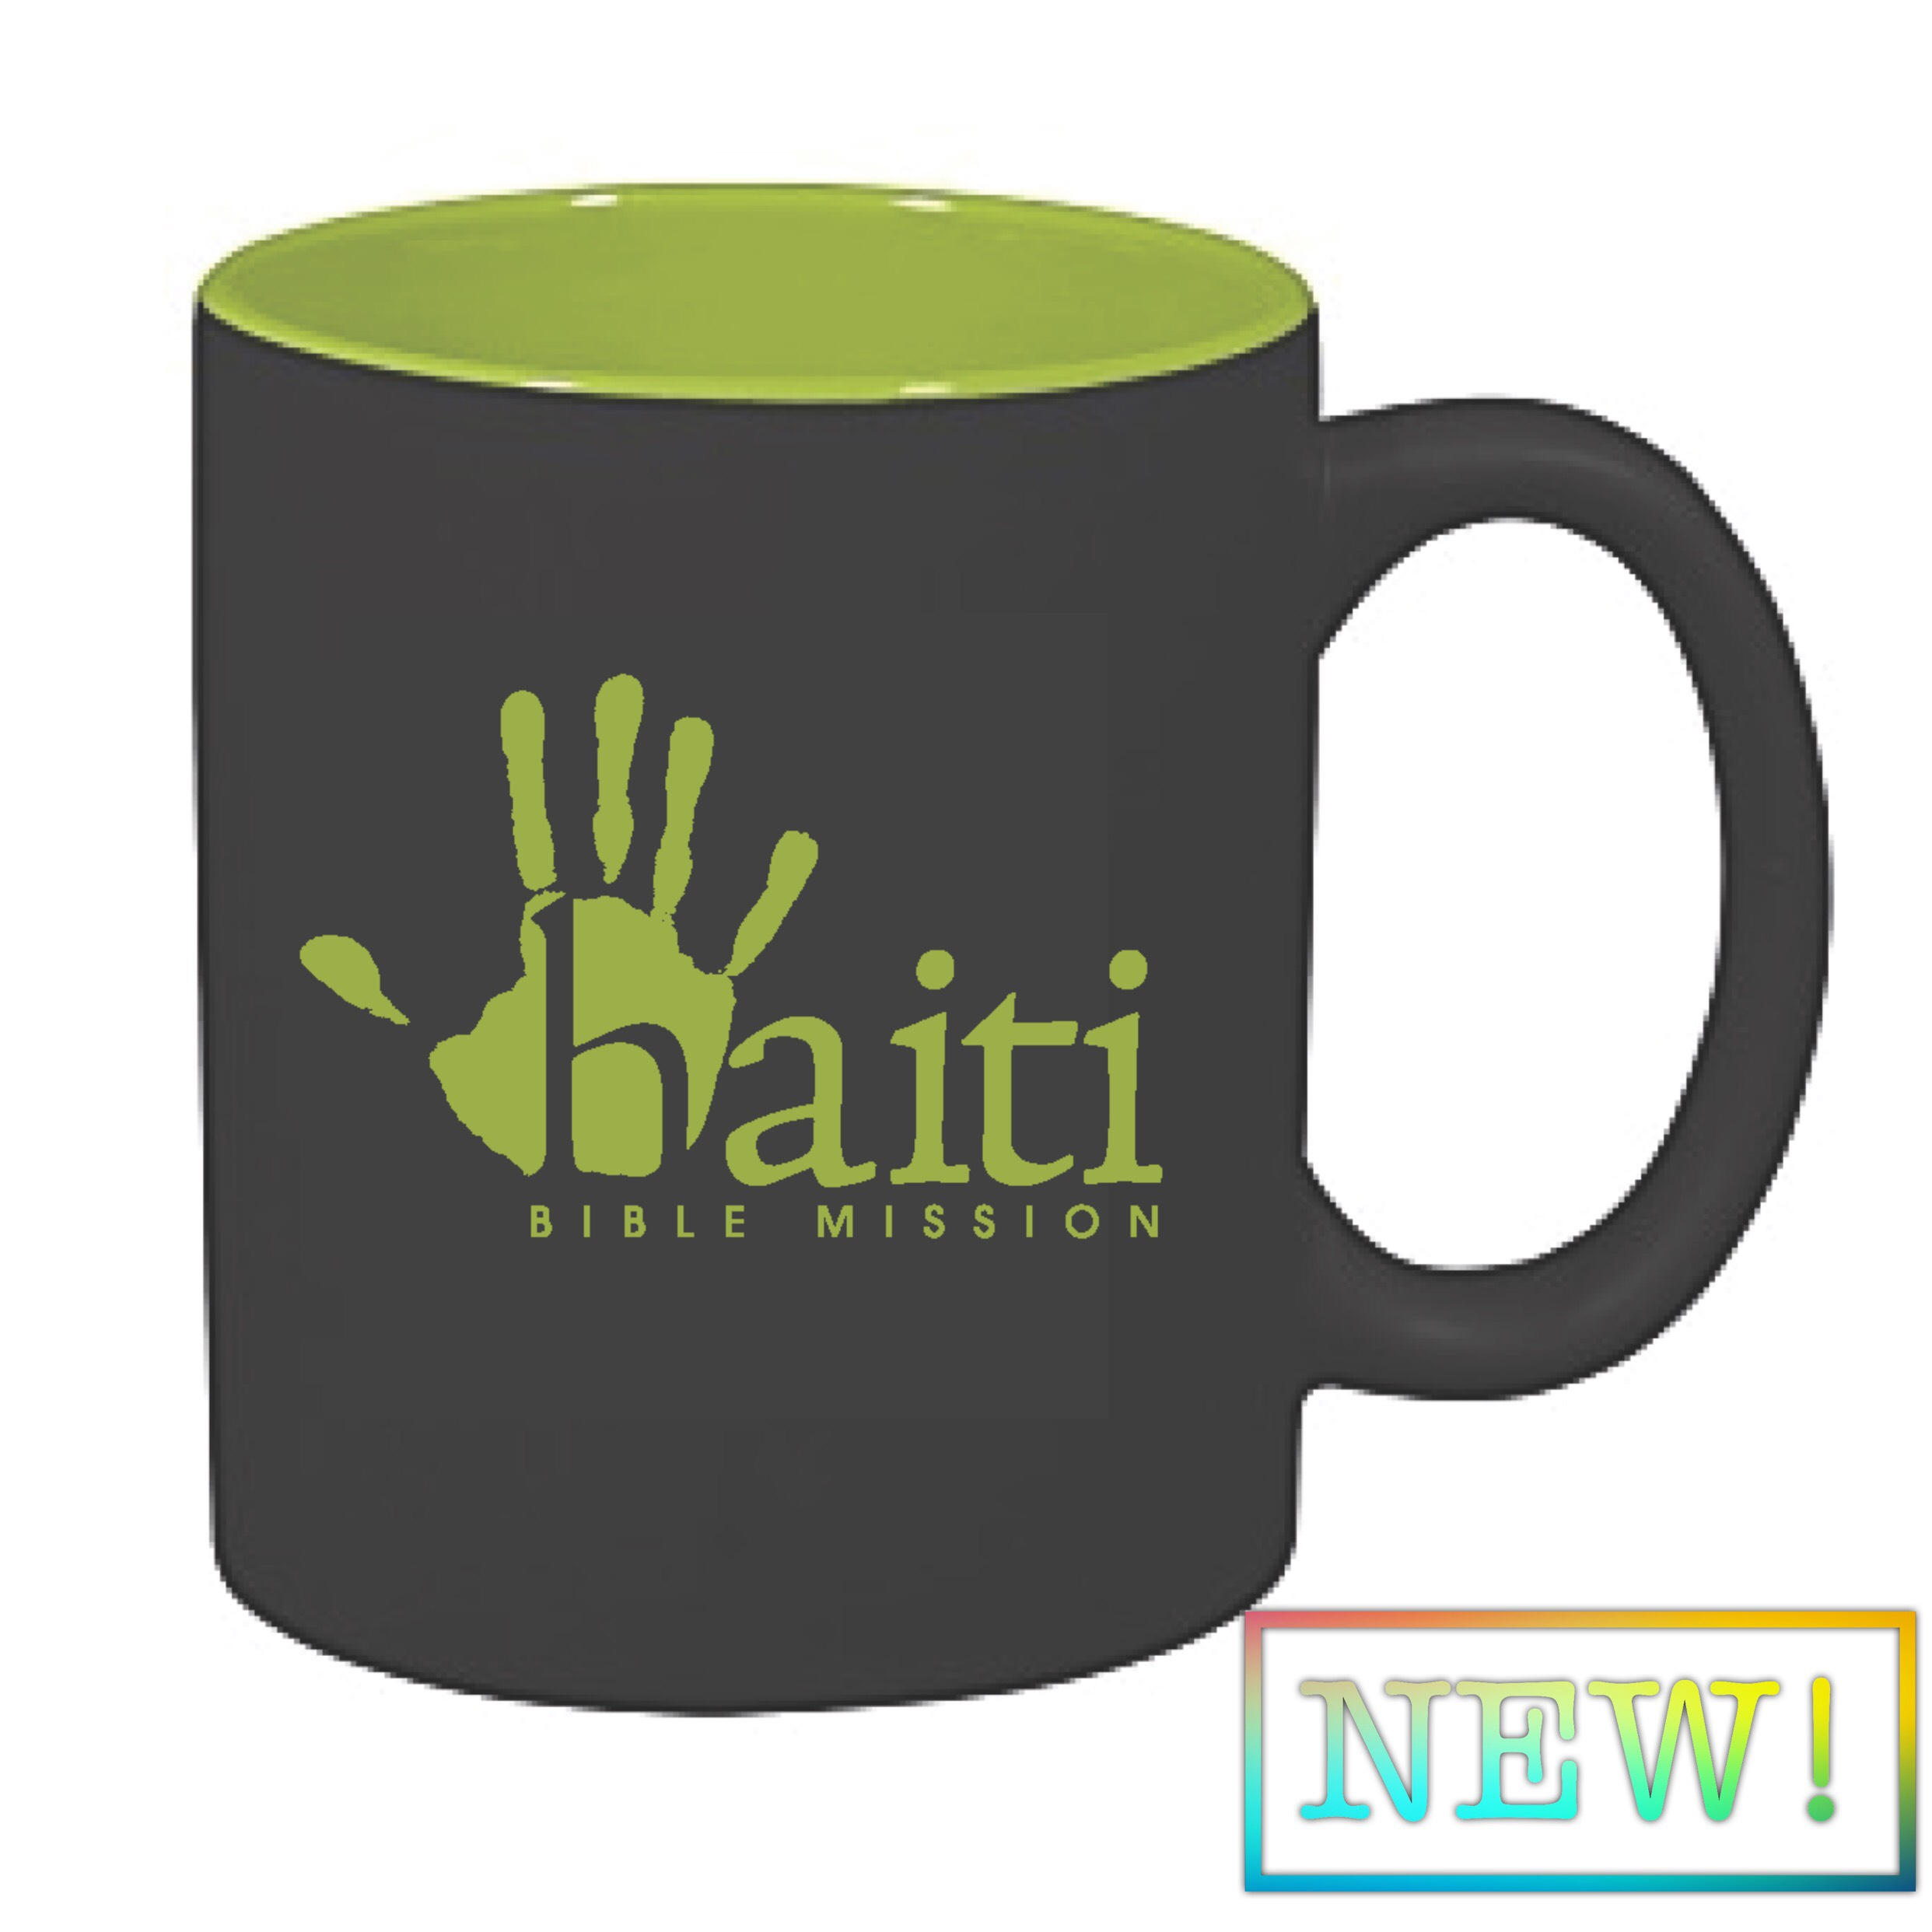 New Logo Mugs! 12 oz Matte Black with HBM Green interior.